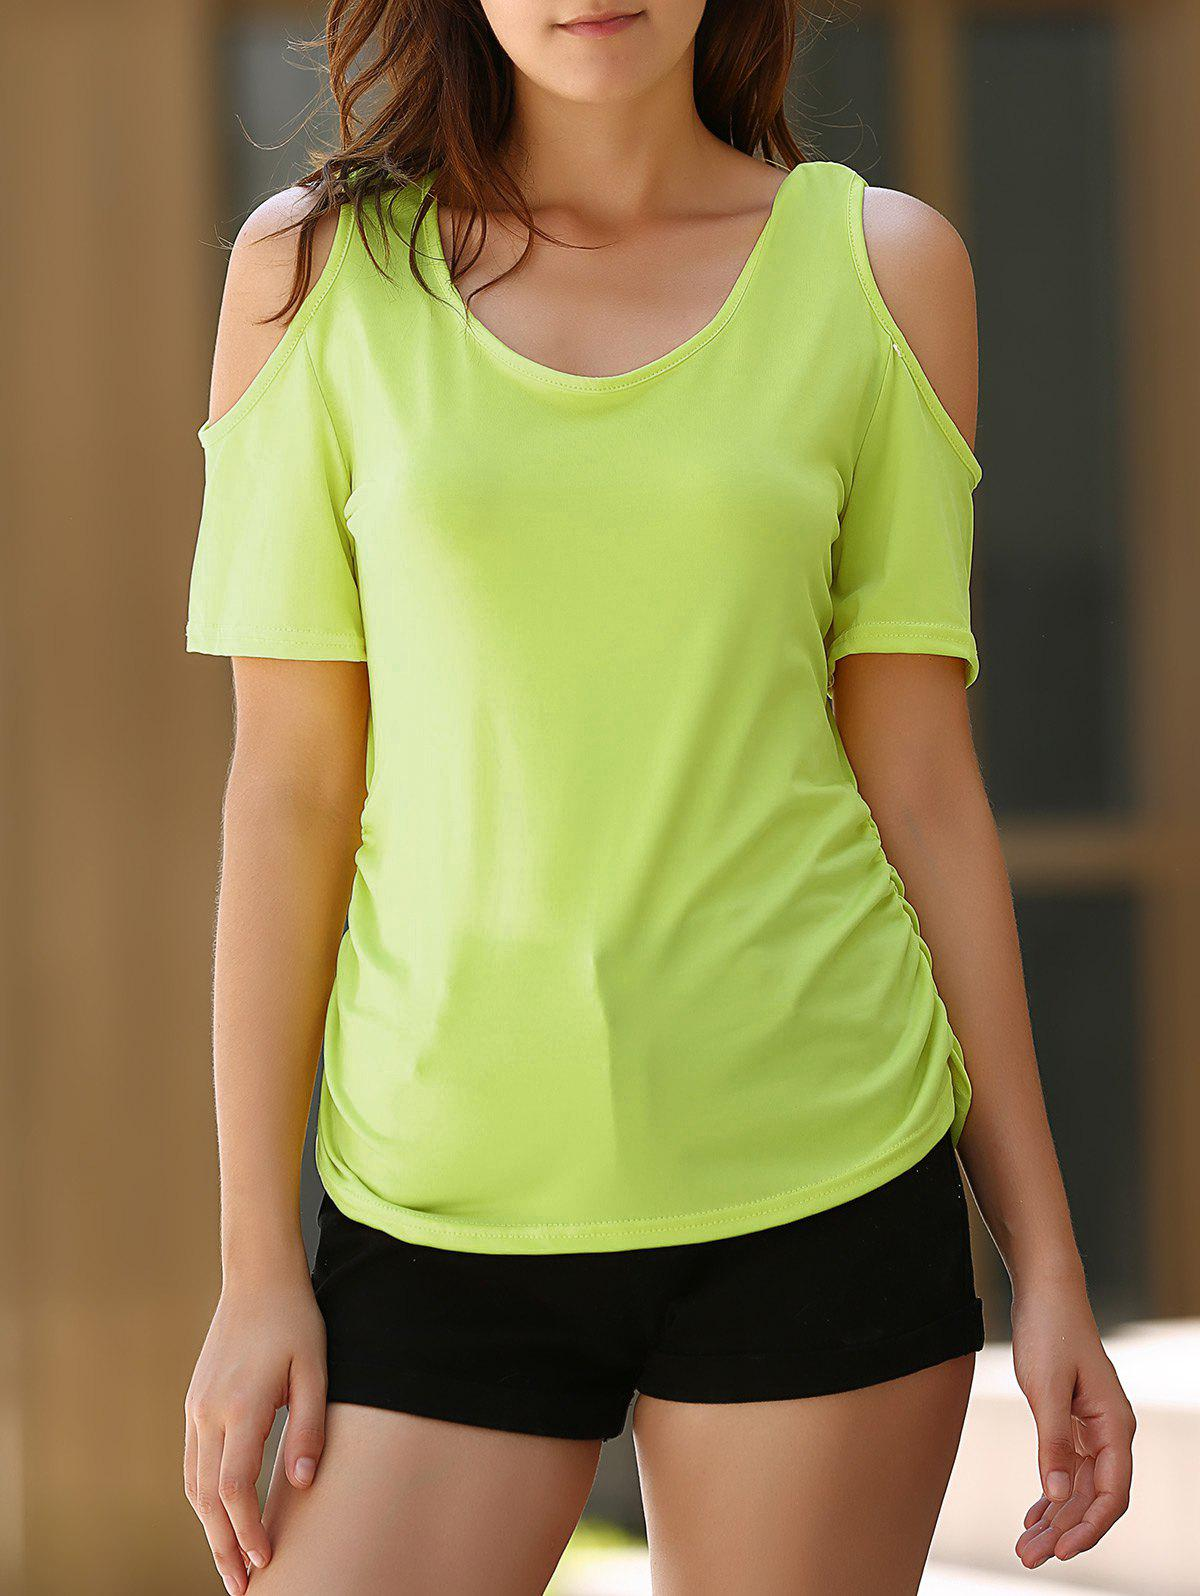 Sexy Women's U Neck Cold Shoulder Solid Color T-Shirt - NEON GREEN M